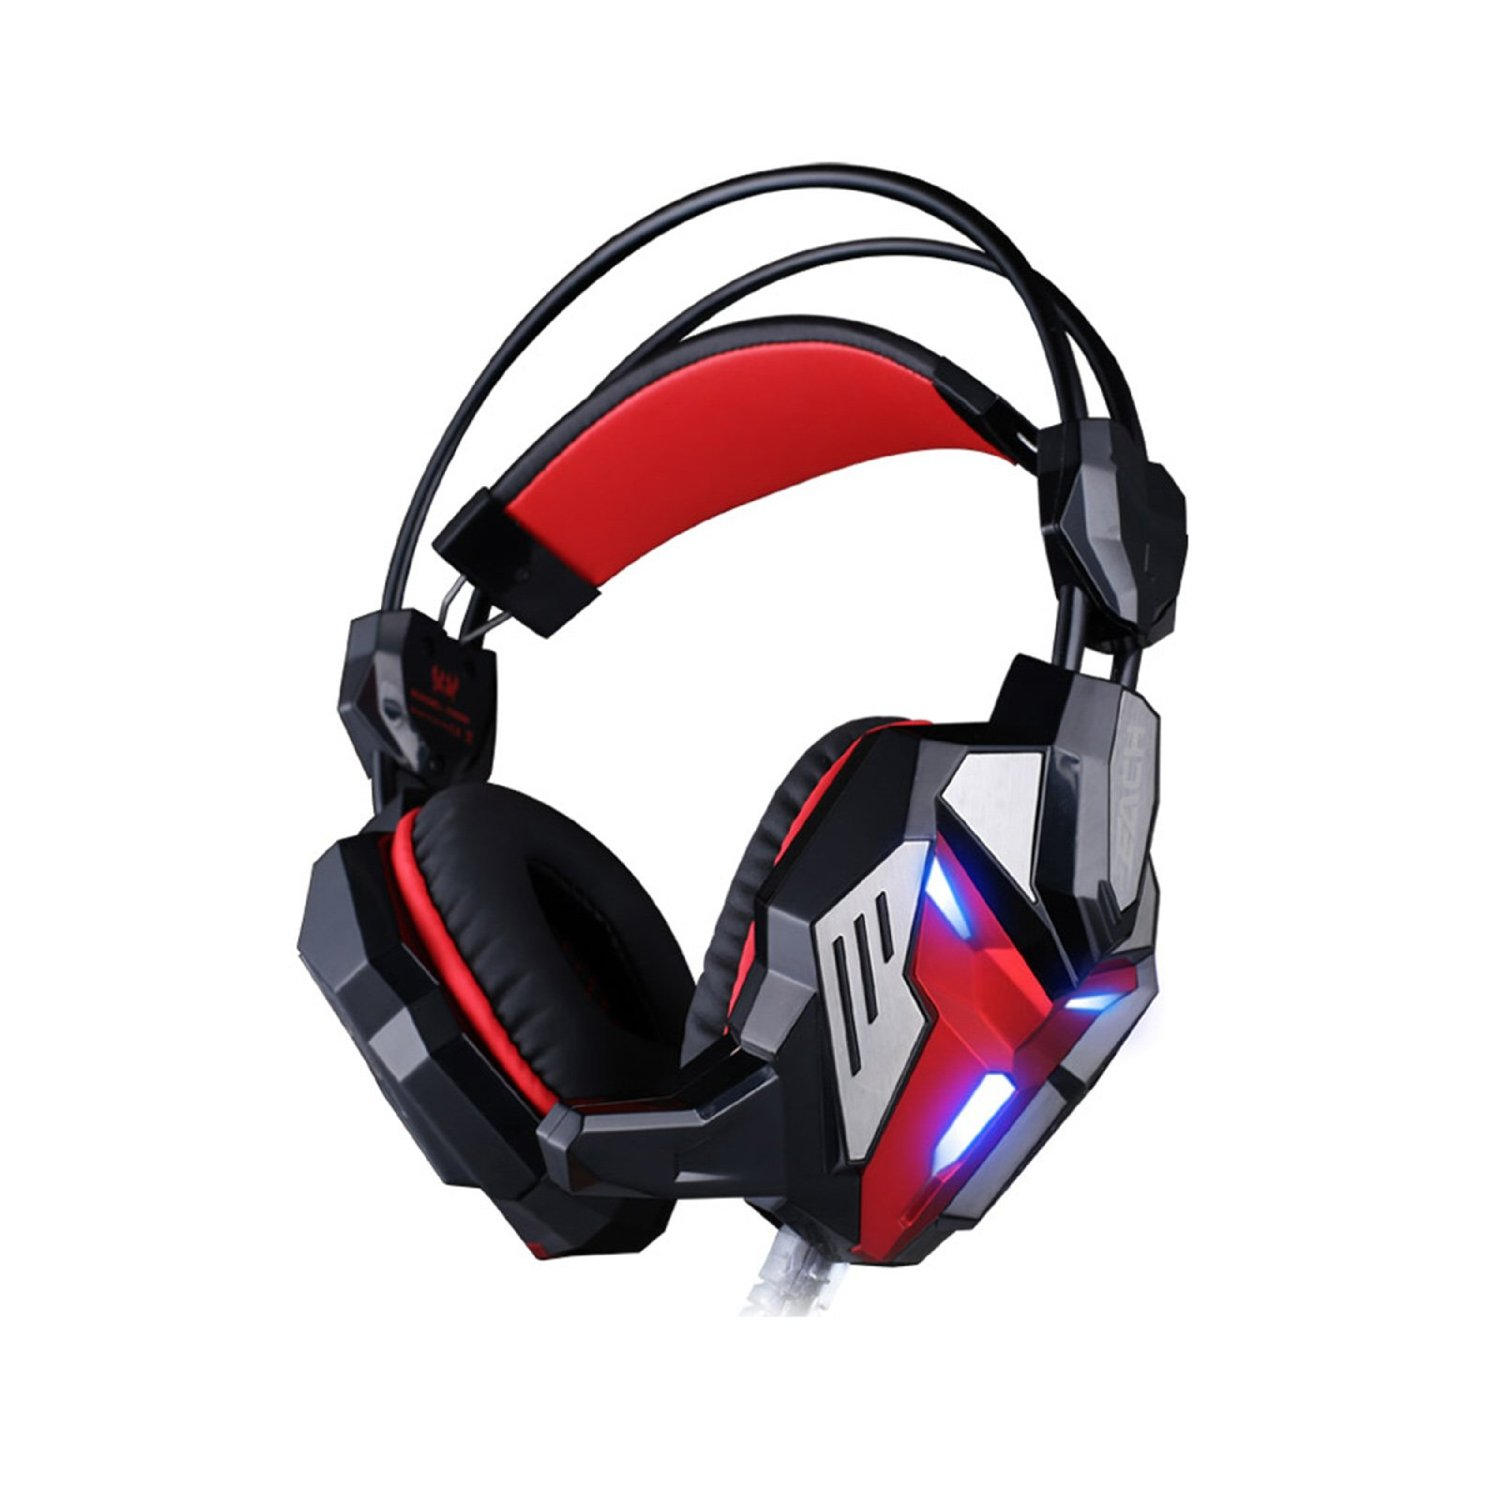 G3100 Vibration Function Pro Gaming Headphone Games Headset with Mic Stereo Bass LED Light for PC Gamer g1100 vibration function professional gaming headphone games headset with mic stereo bass breathing led light for pc gamer